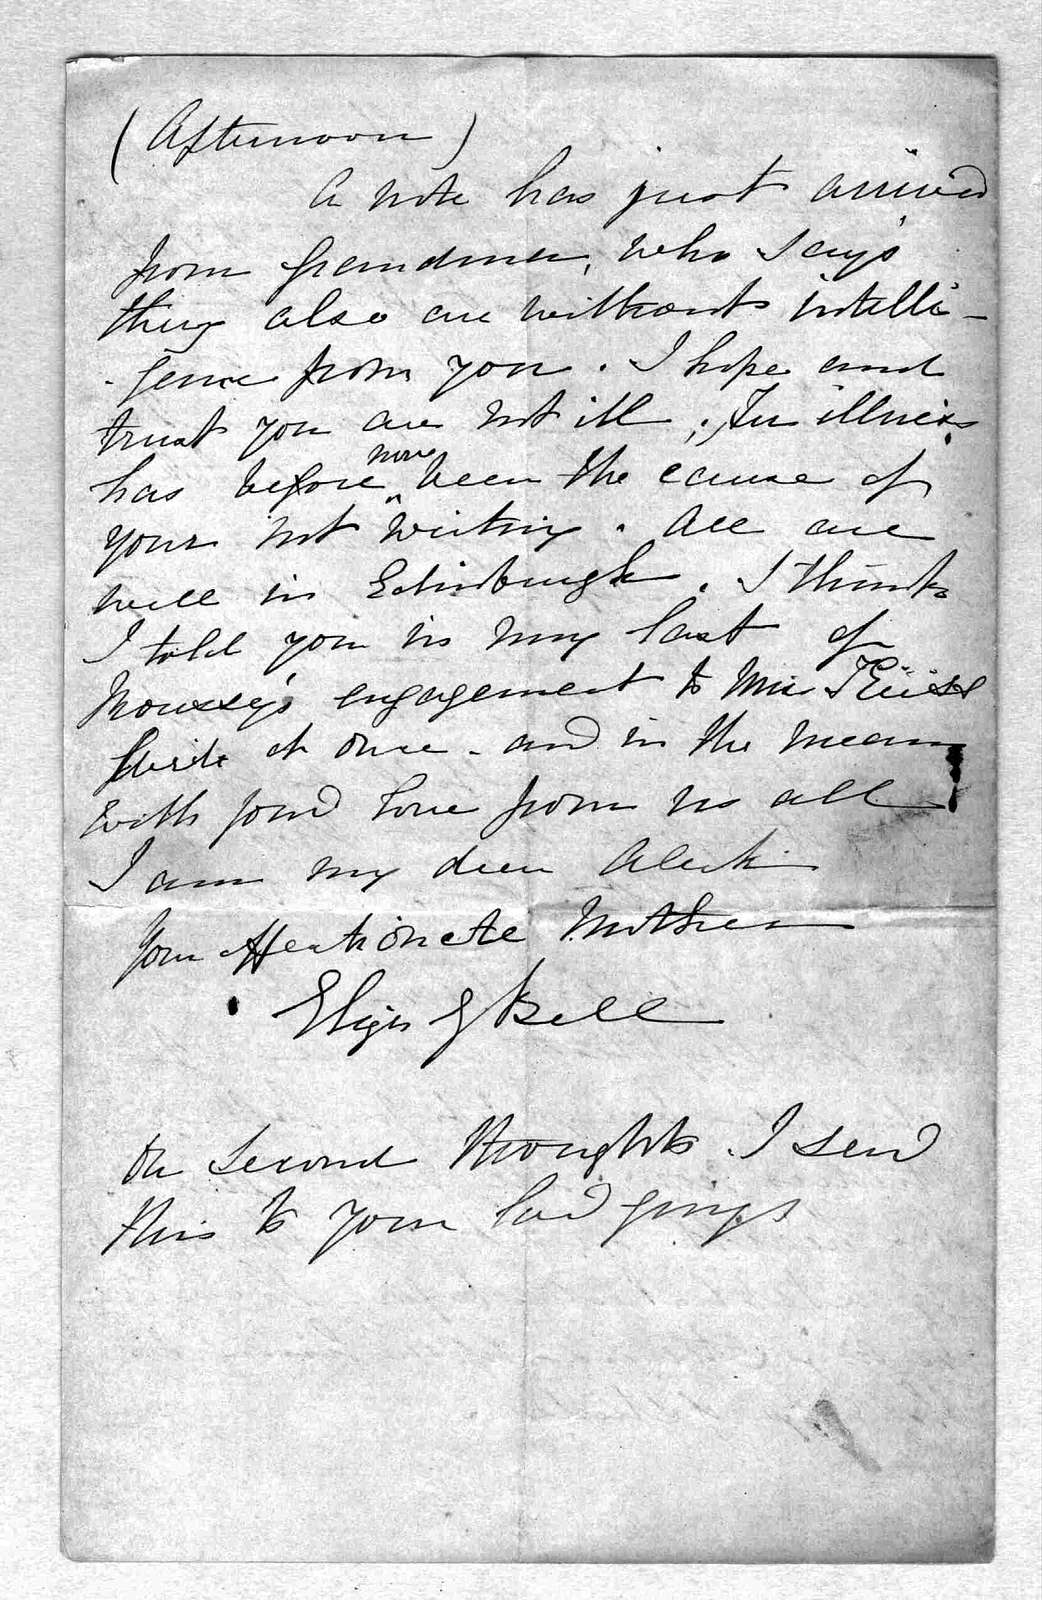 Letter from Eliza Symonds Bell to Alexander Graham Bell, January 24, 1867